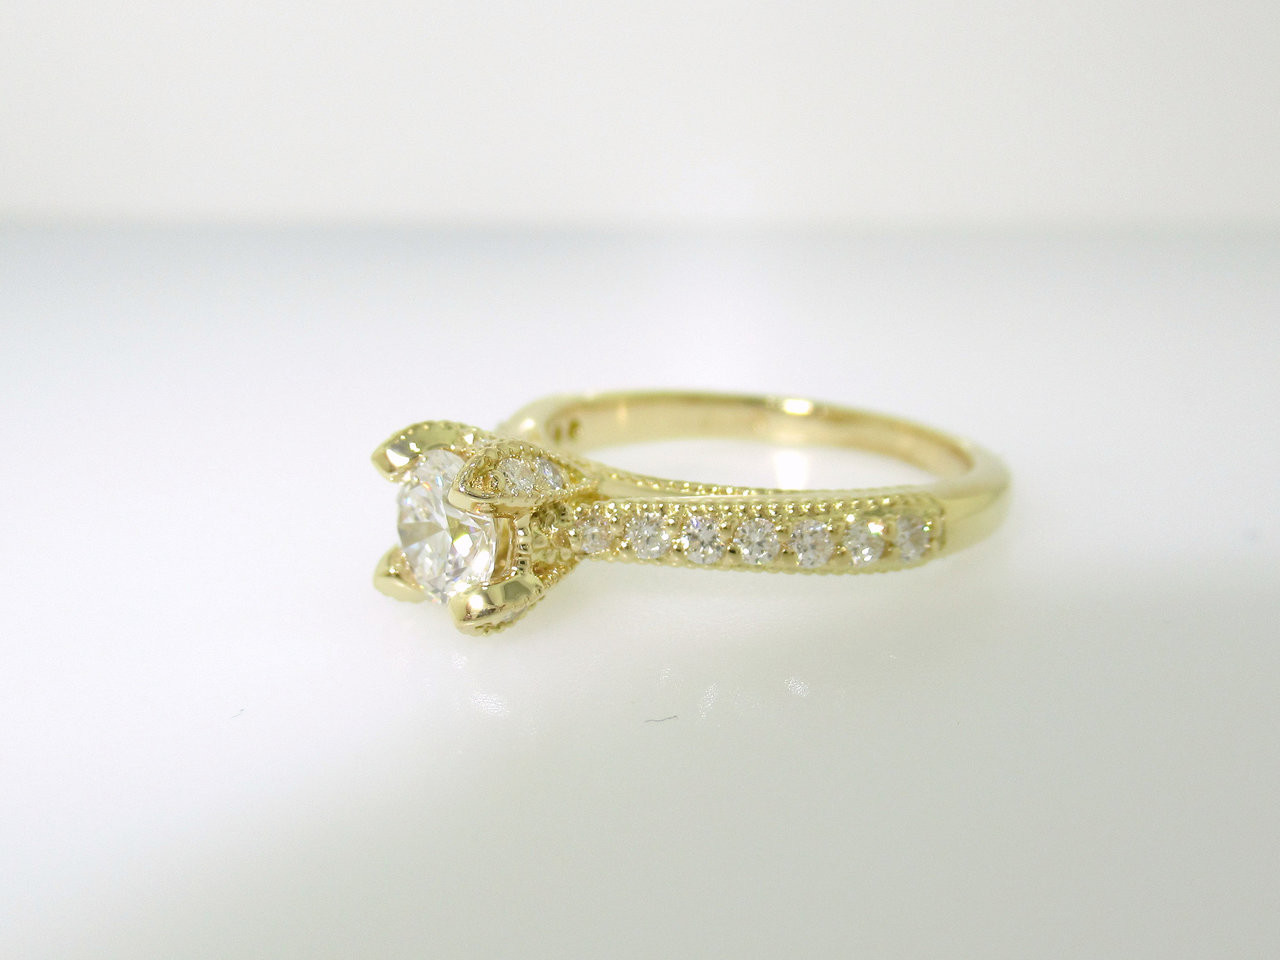 55f842327efc4 Diamond Engagement Ring 18k Yellow Gold, Vintage Engagement Ring, Diamond  Bridal Ring, GIA Certified 0.80 Carat Wedding Ring Unique Handmade